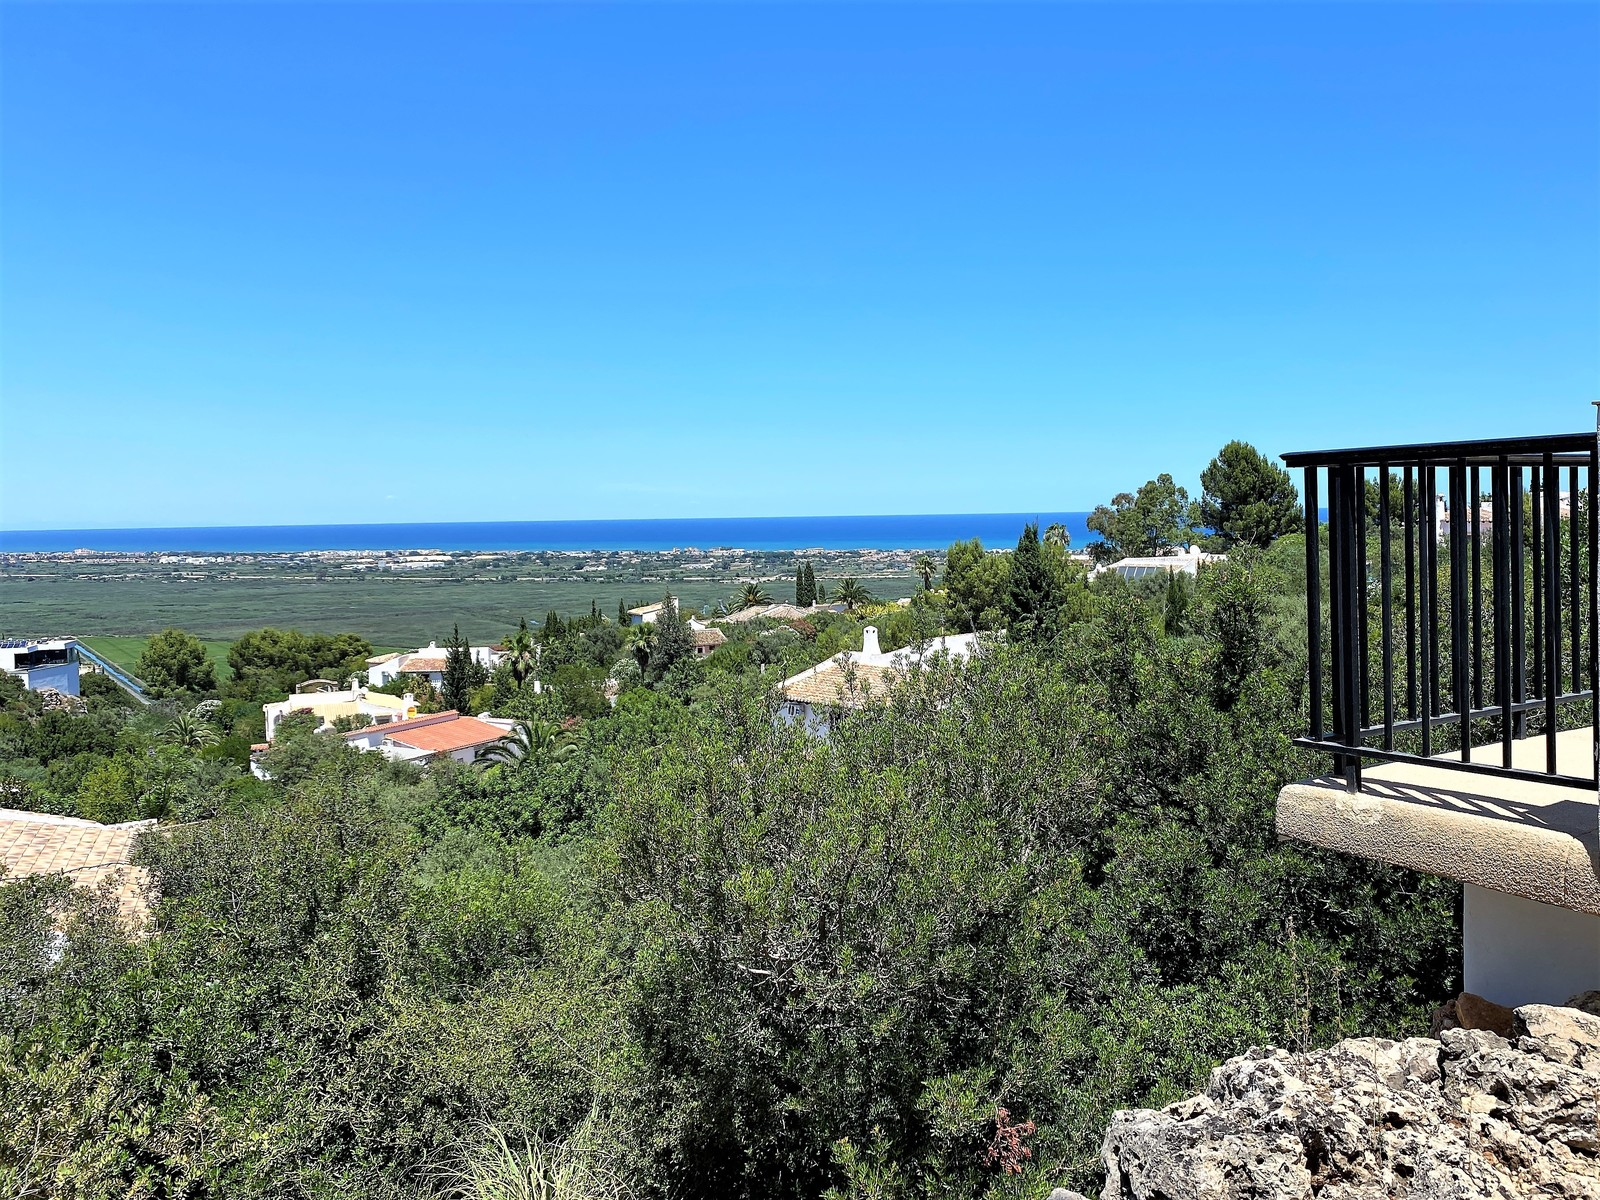 Charming villa at Monte Pego with impressive perspective of the sea